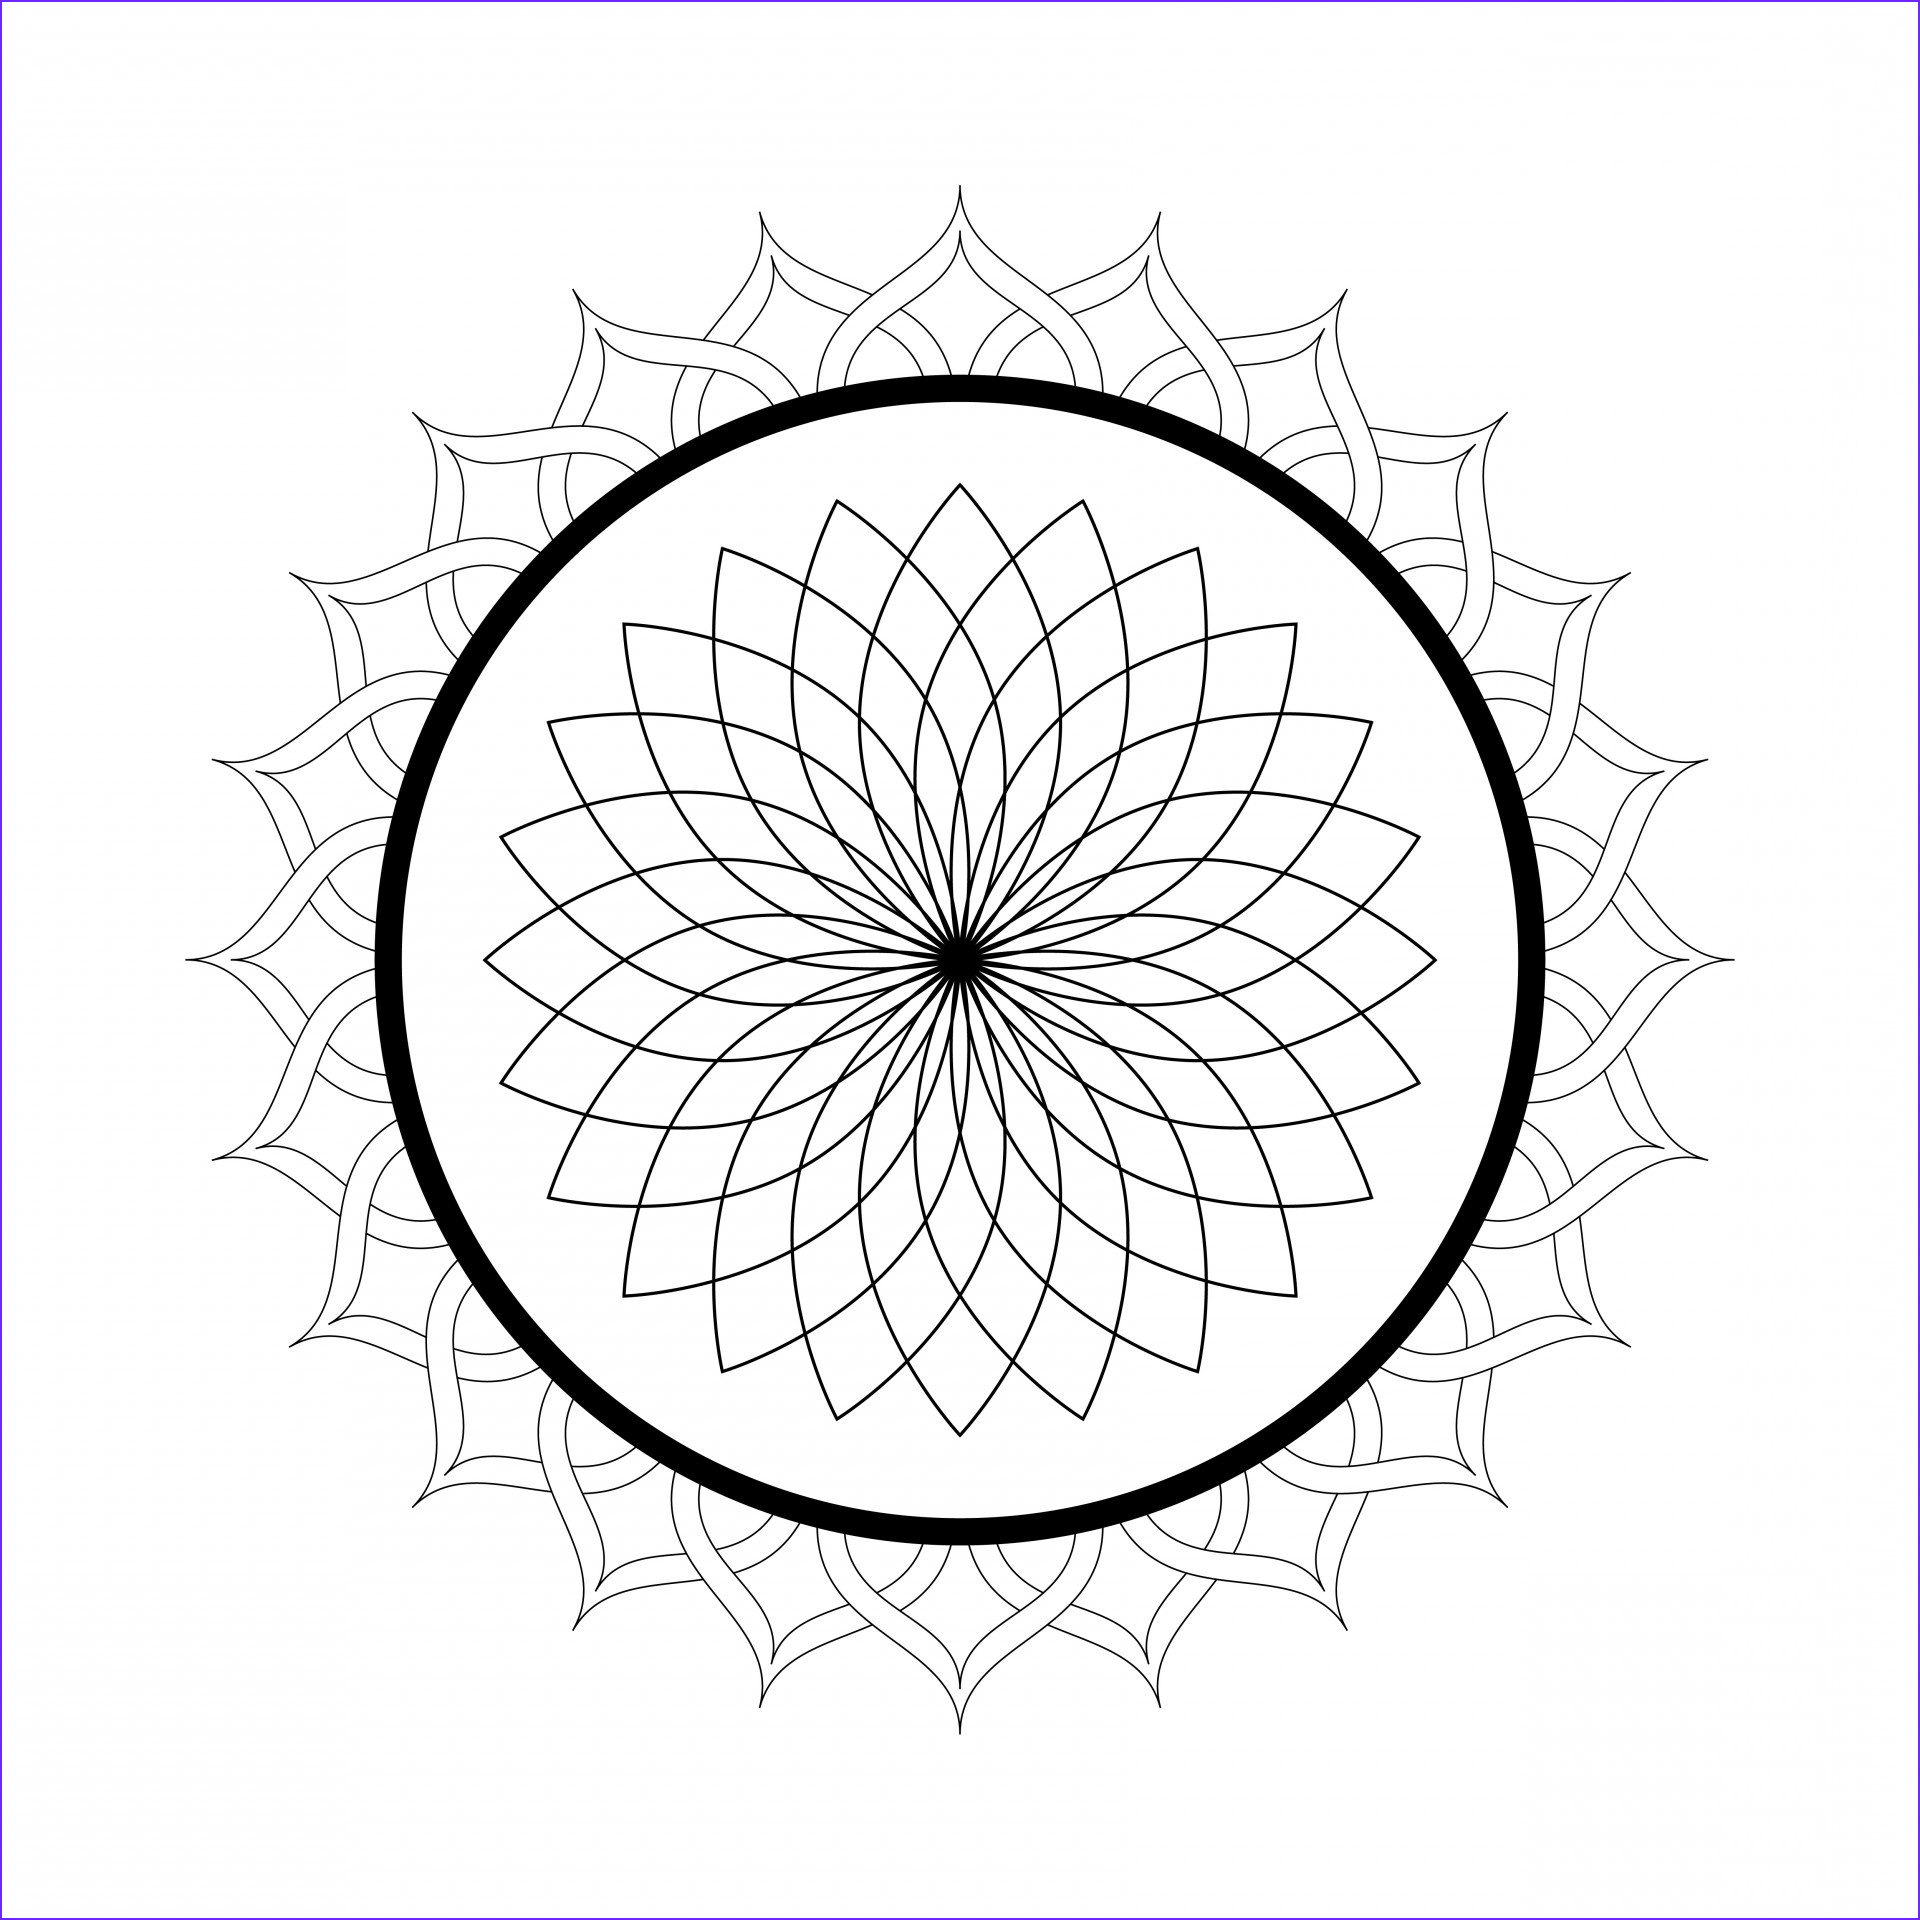 Mandela Adult Coloring Books New Stock Free Printable Mandala Coloring Pages for Adults Best